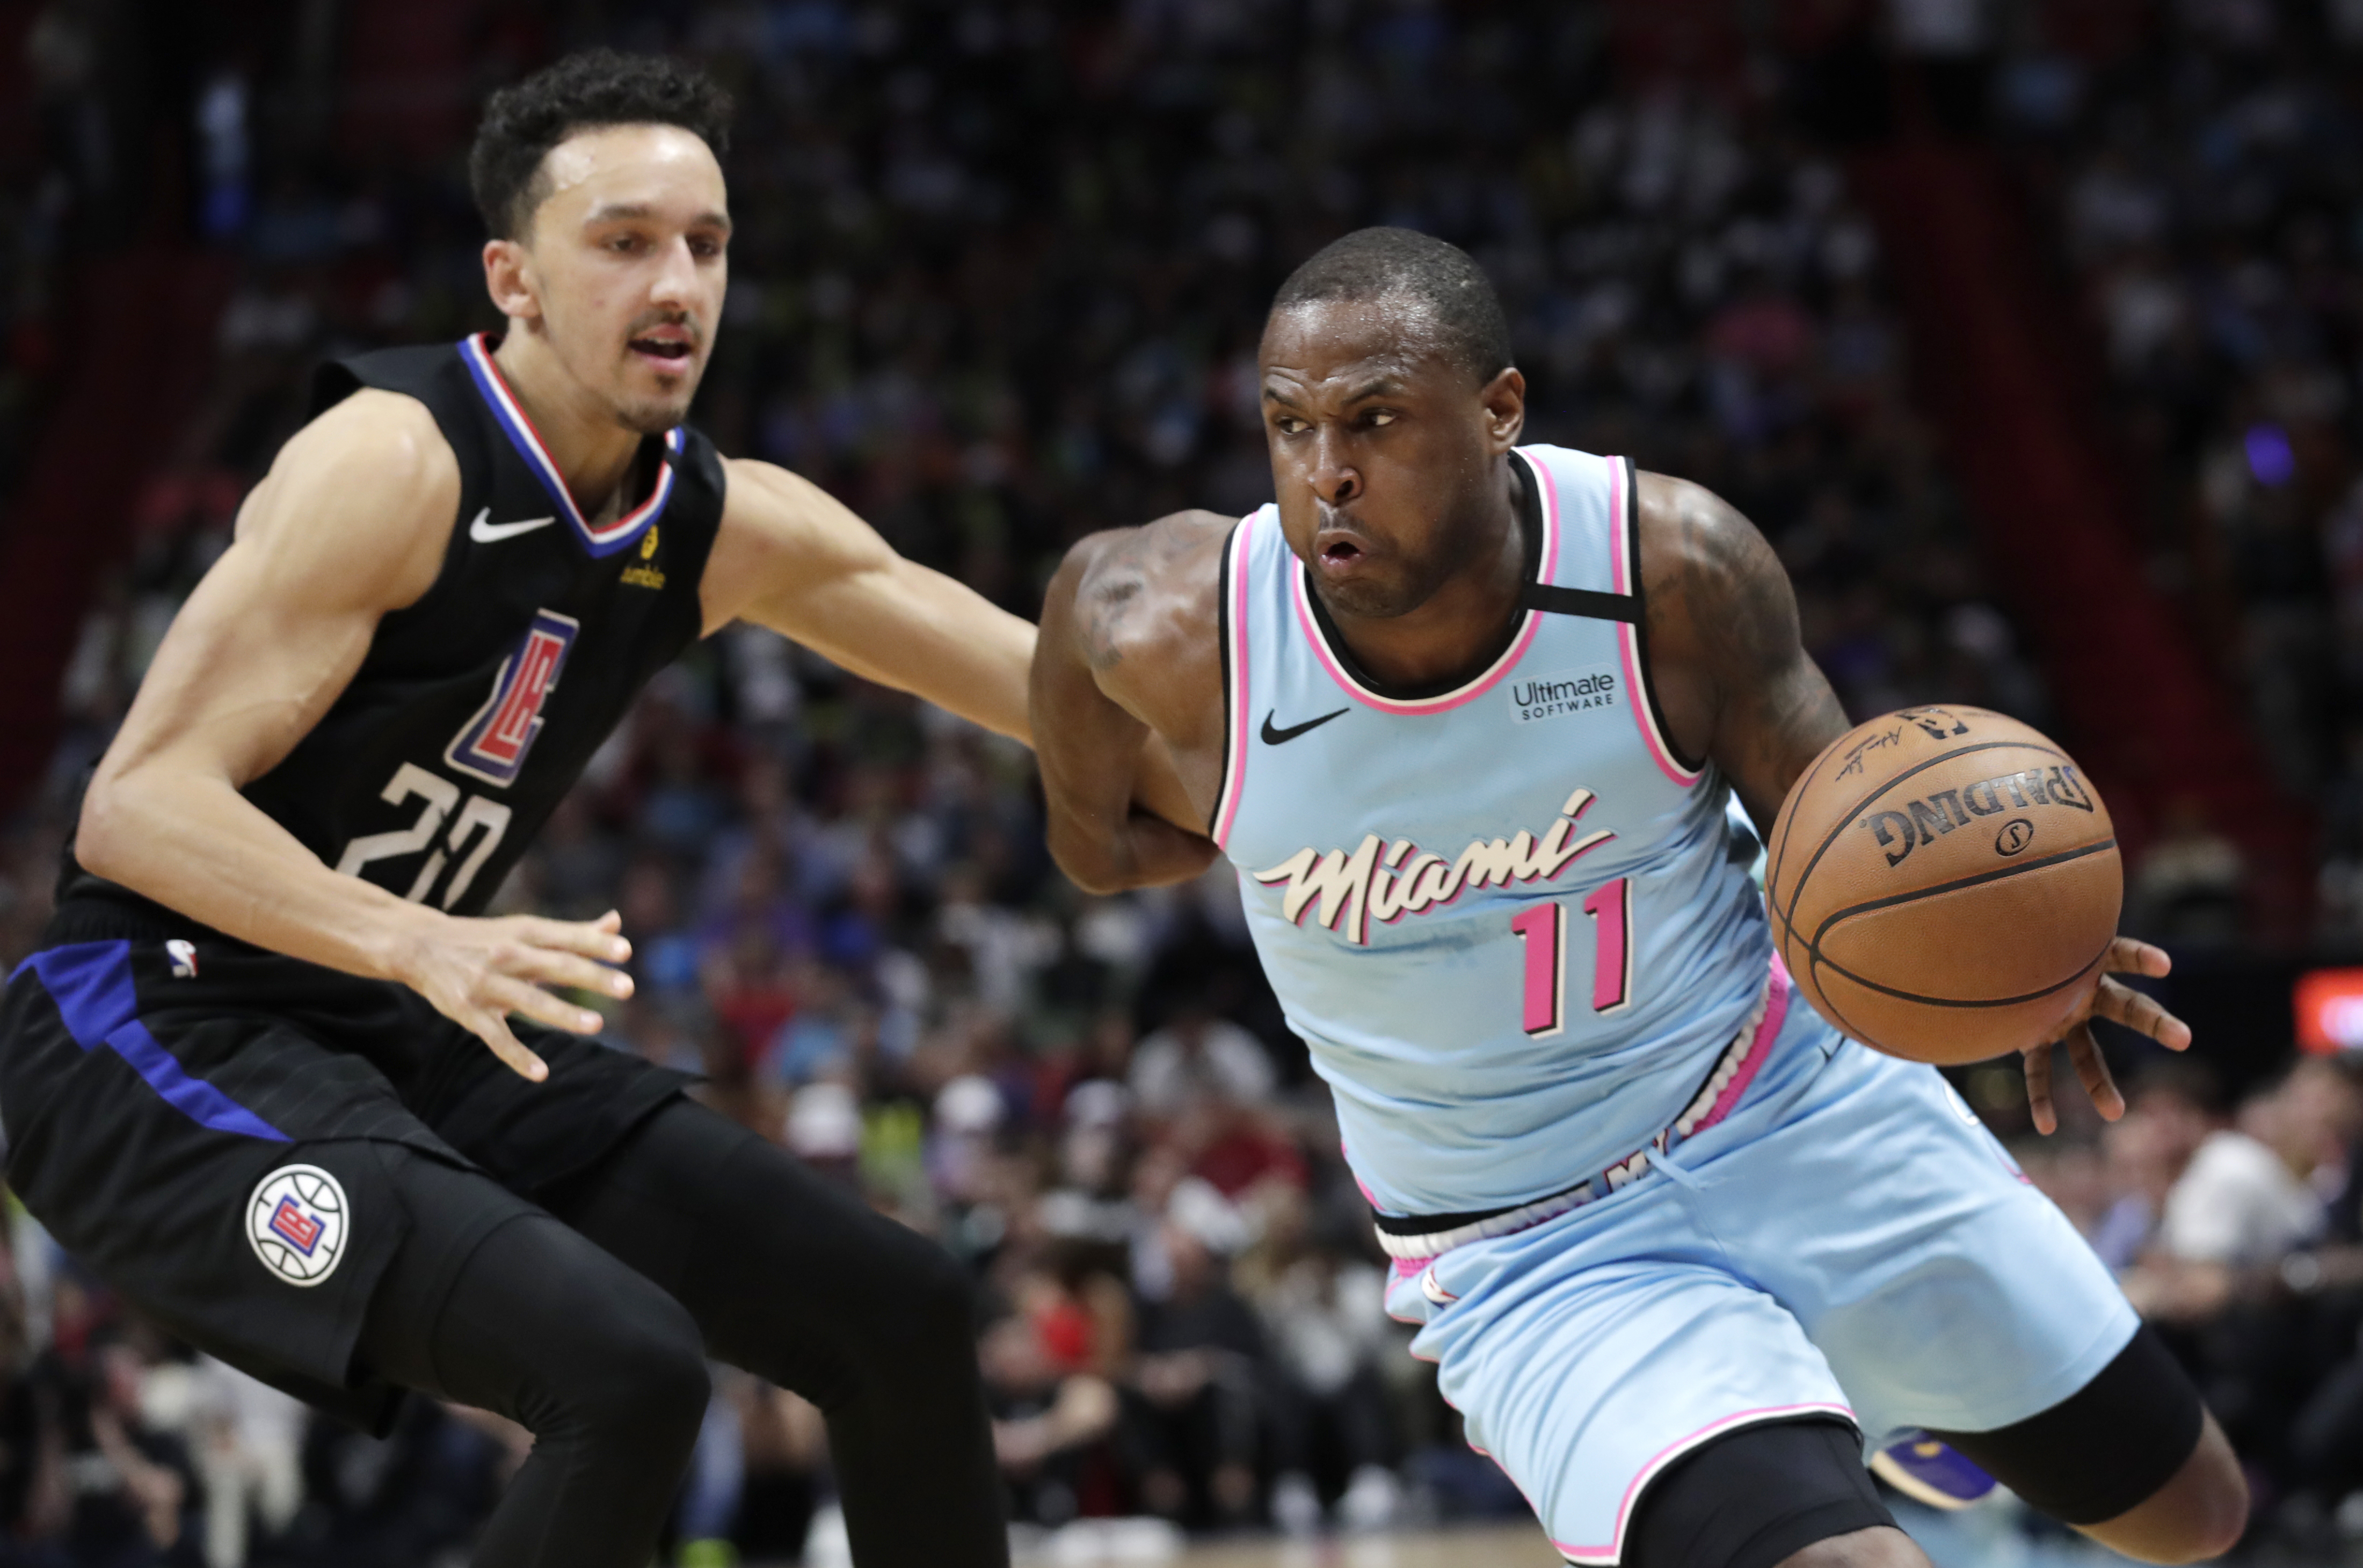 Dion Waiters plays in first game this season with Miami Heat, takes plenty of 3s, gets loud ovation